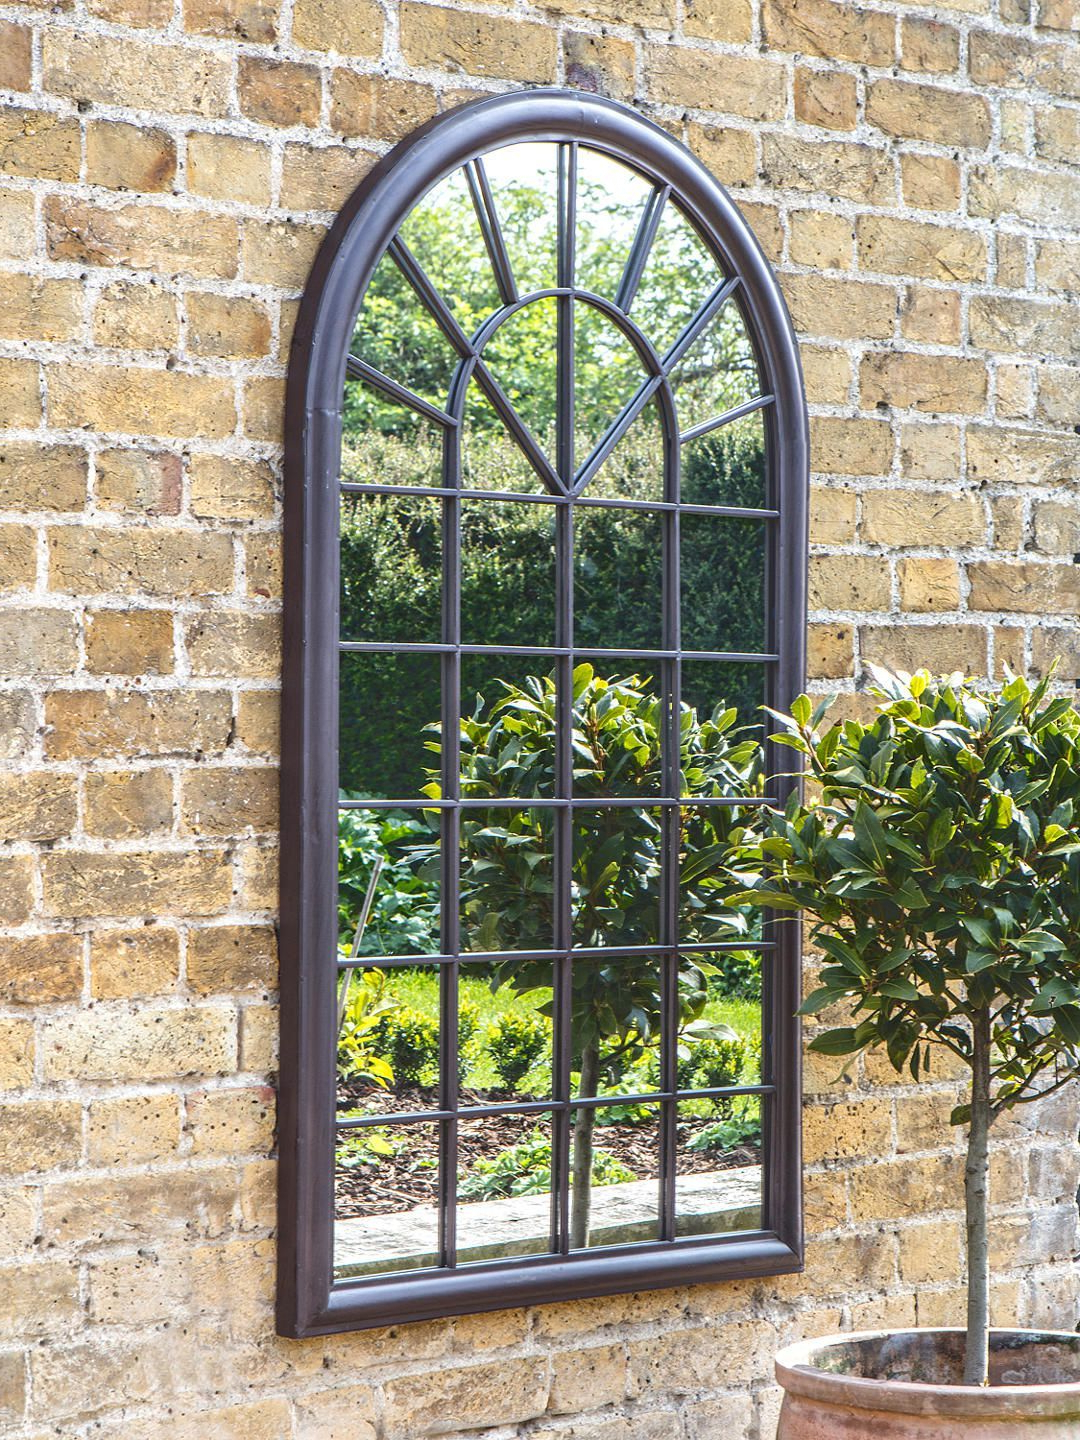 Most Current Faux Window Wood Wall Mirrors In Fura Outdoor Garden Wall Window Style Arched Mirror, 131 X 75Cm, Antique  Bronze (View 9 of 20)